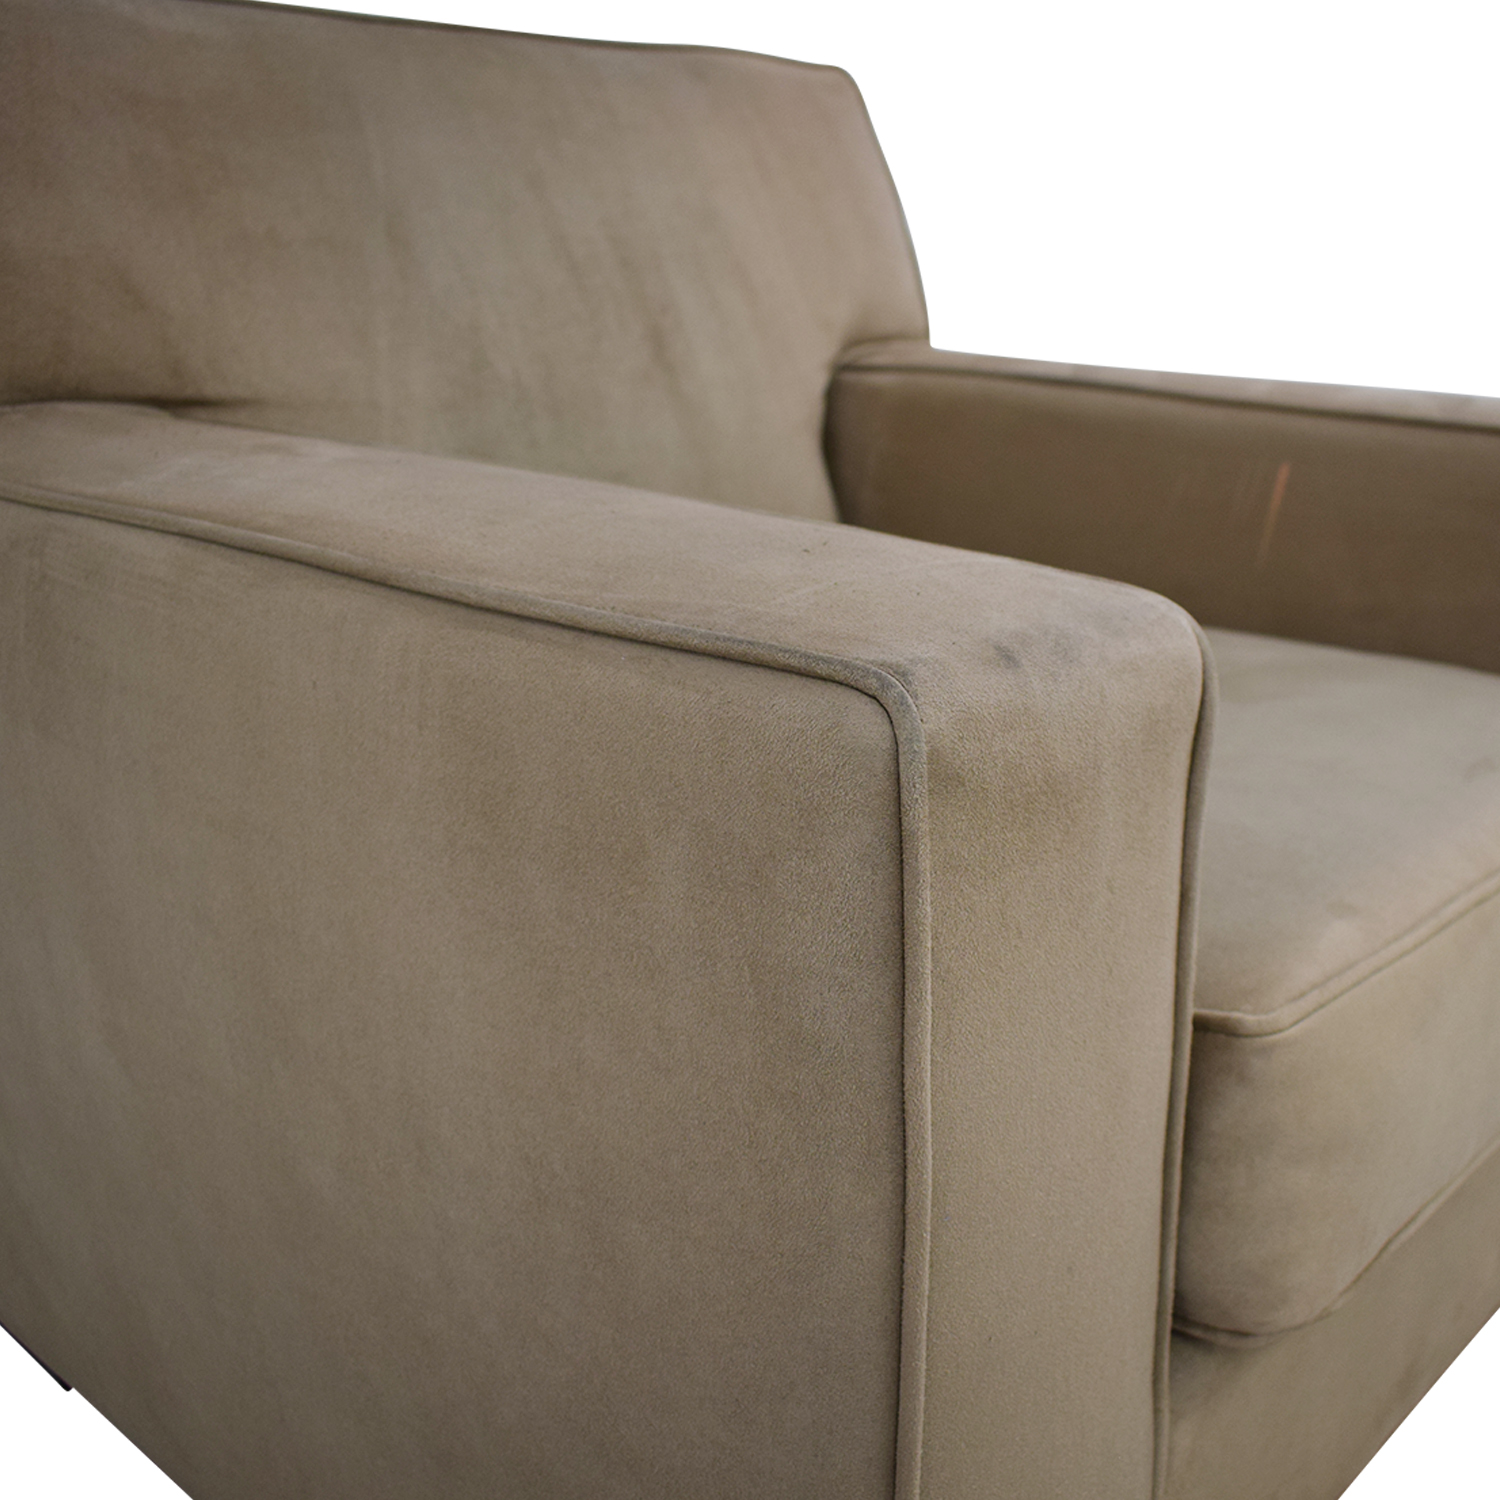 shop Crate & Barrel Suede Sofa Chair Crate & Barrel Accent Chairs